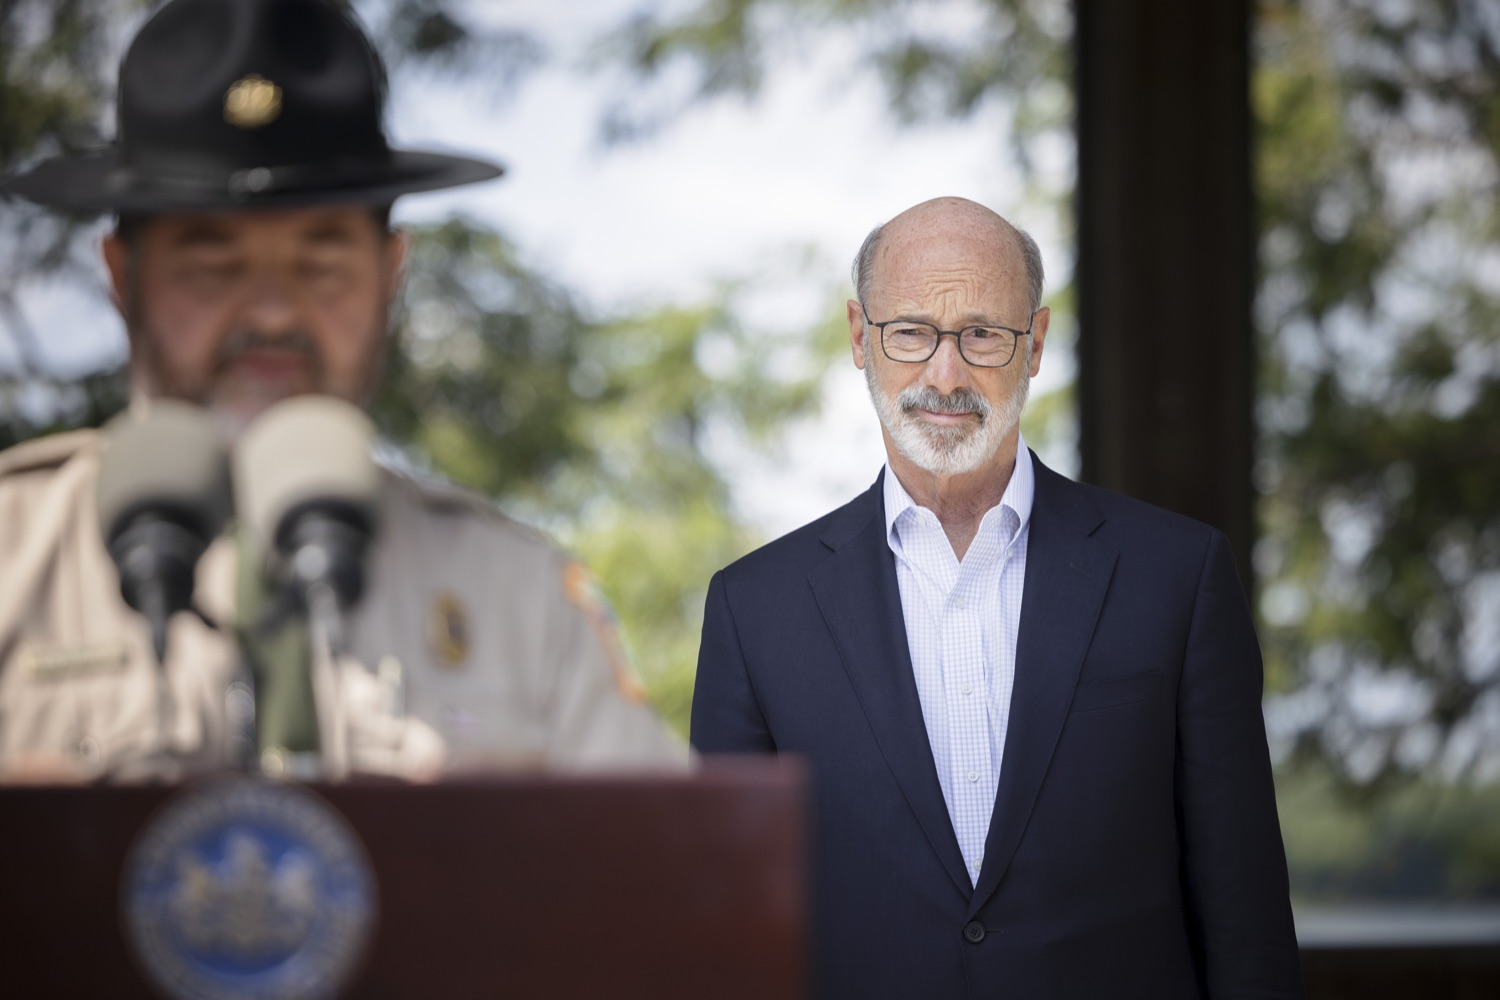 """<a href=""""https://filesource.wostreaming.net/commonwealthofpa/photo/19111_gov_parkVaccines_dz_012.jpg"""" target=""""_blank"""">⇣Download Photo<br></a>Pennsylvania Governor Tom Wolf listens as Michael Kutzmonich of the Pennsylvania DCNR speaks with the press.  Governor Tom Wolf today announced that the Department of Health (DOH) and Department of Conservation and Natural Resources (DCNR) are partnering to hold COVID-19 vaccine clinics at five state parks across the commonwealth to help expand access to the COVID-19 vaccine.  Harrisburg, PA -- September 10, 2021"""